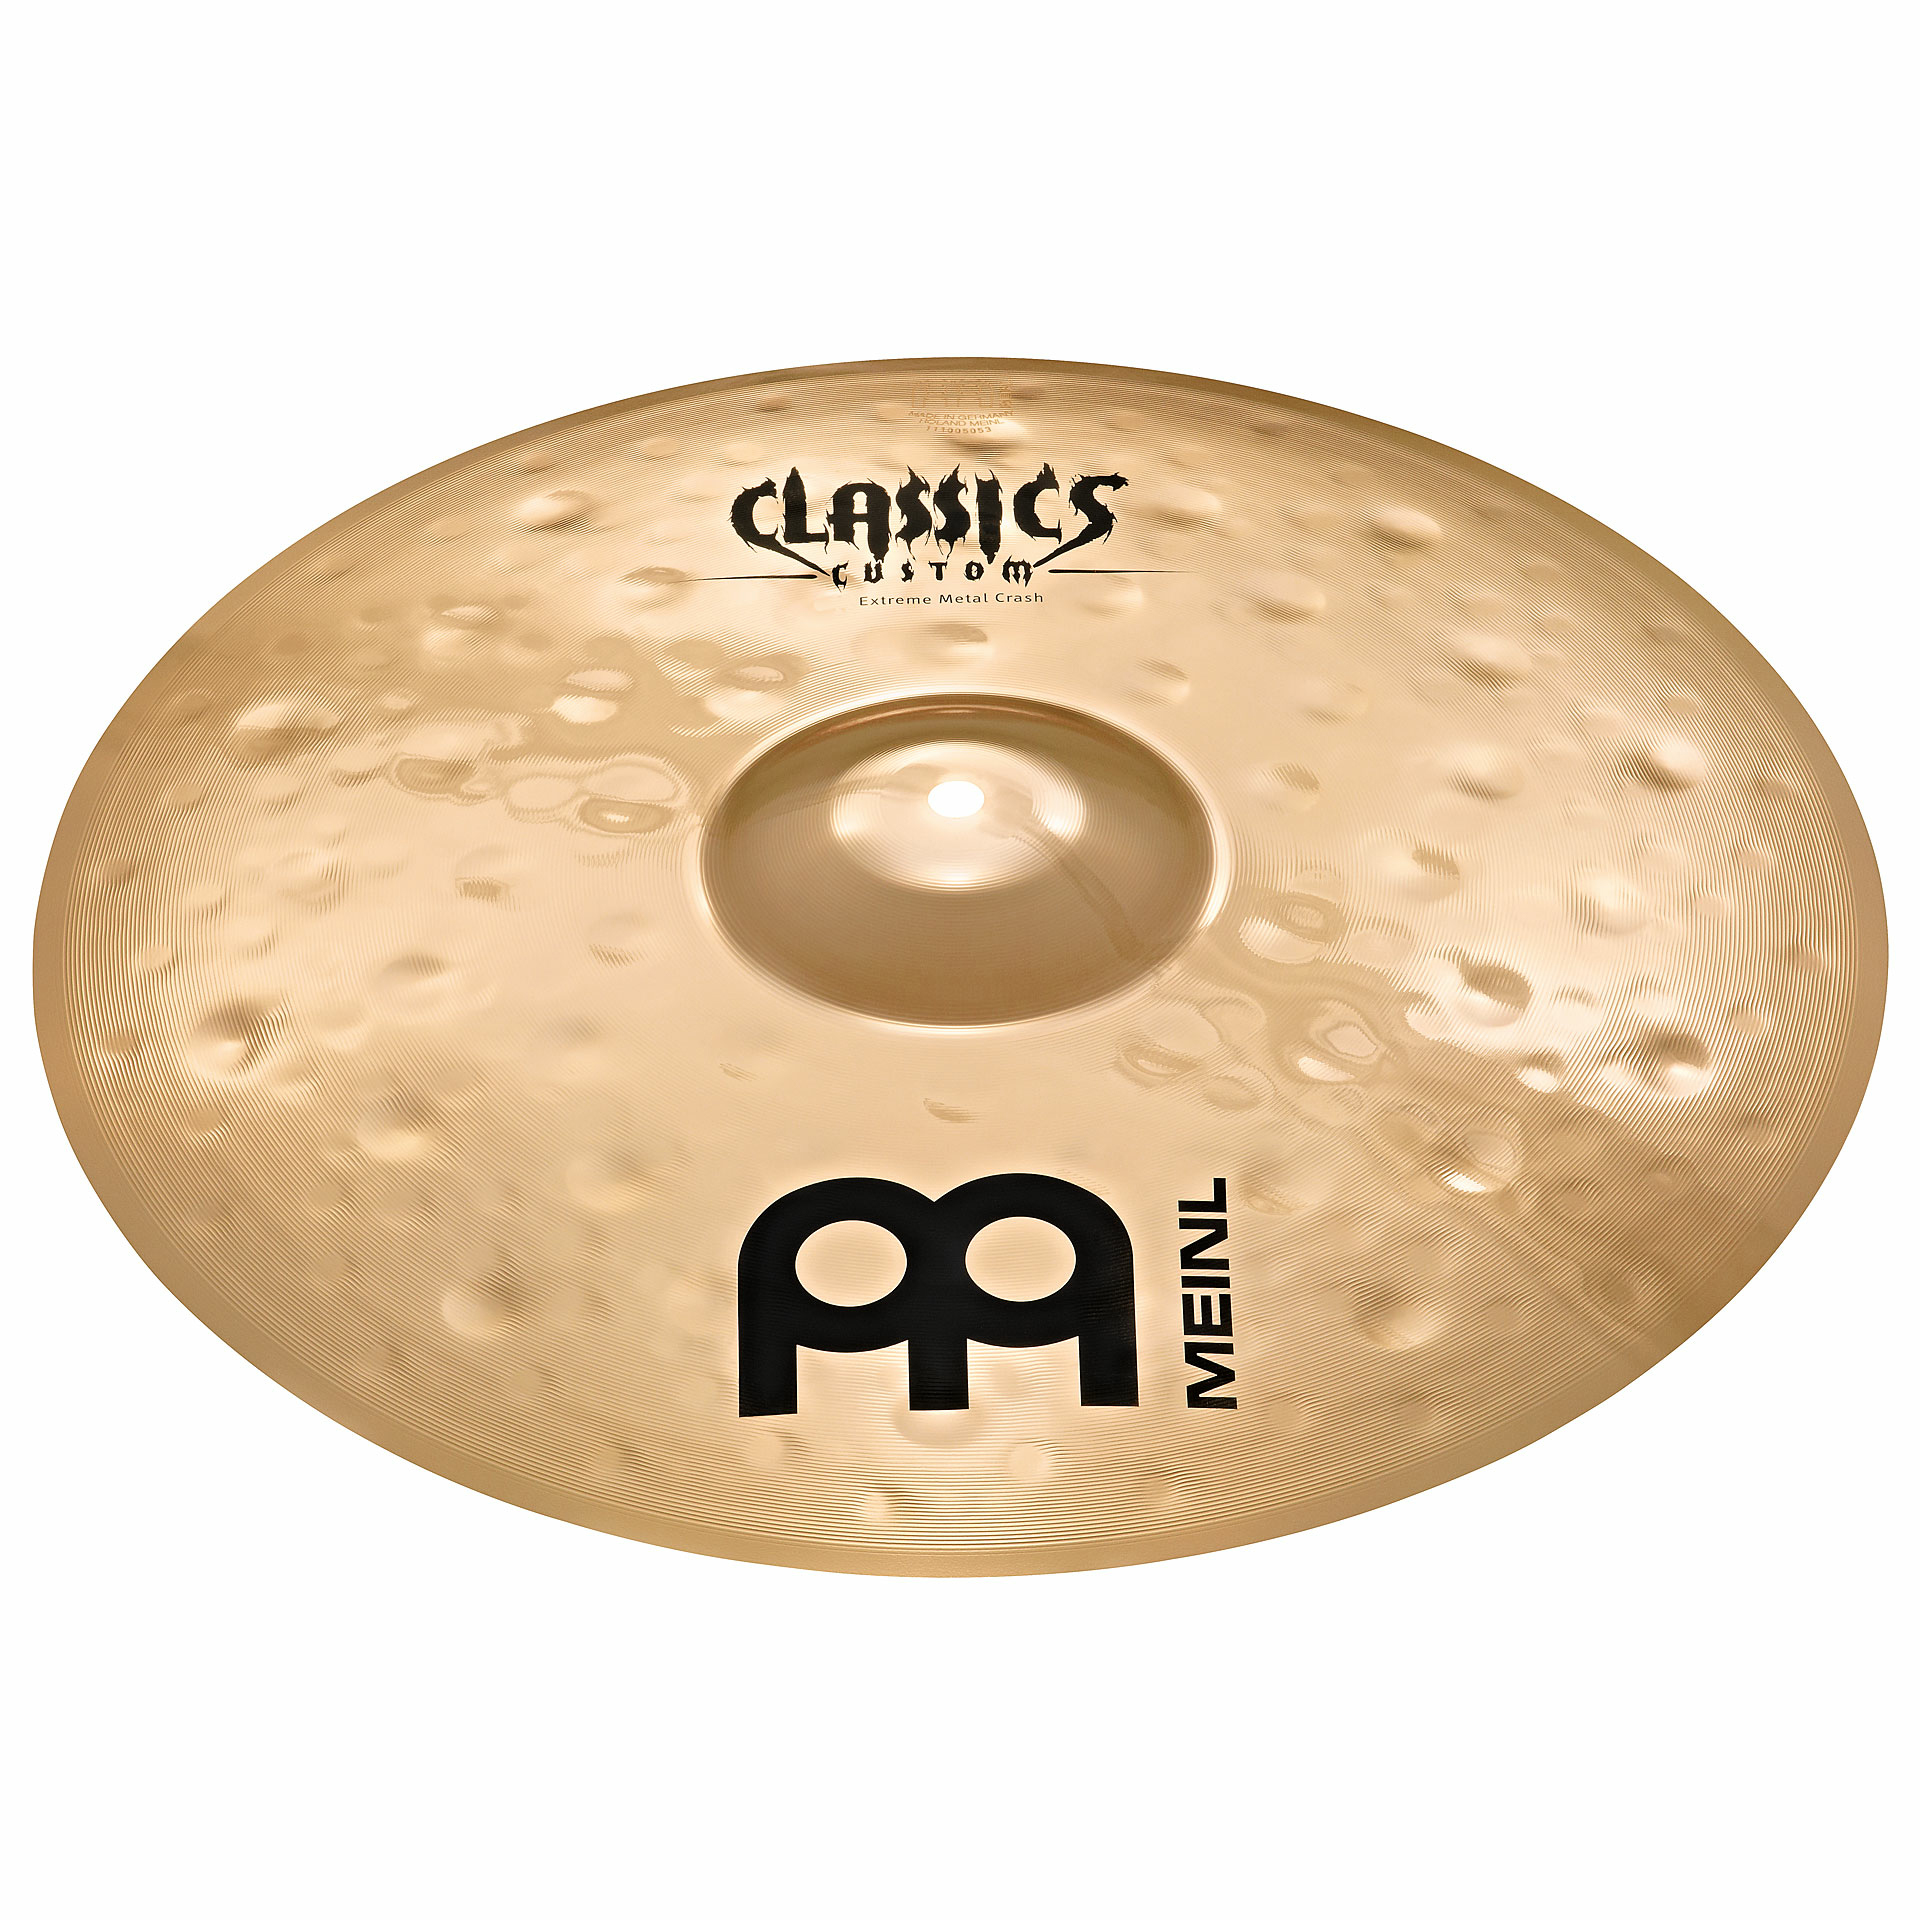 "Meinl 17"" Classics Custom Extreme Metal Crash Cymbal"